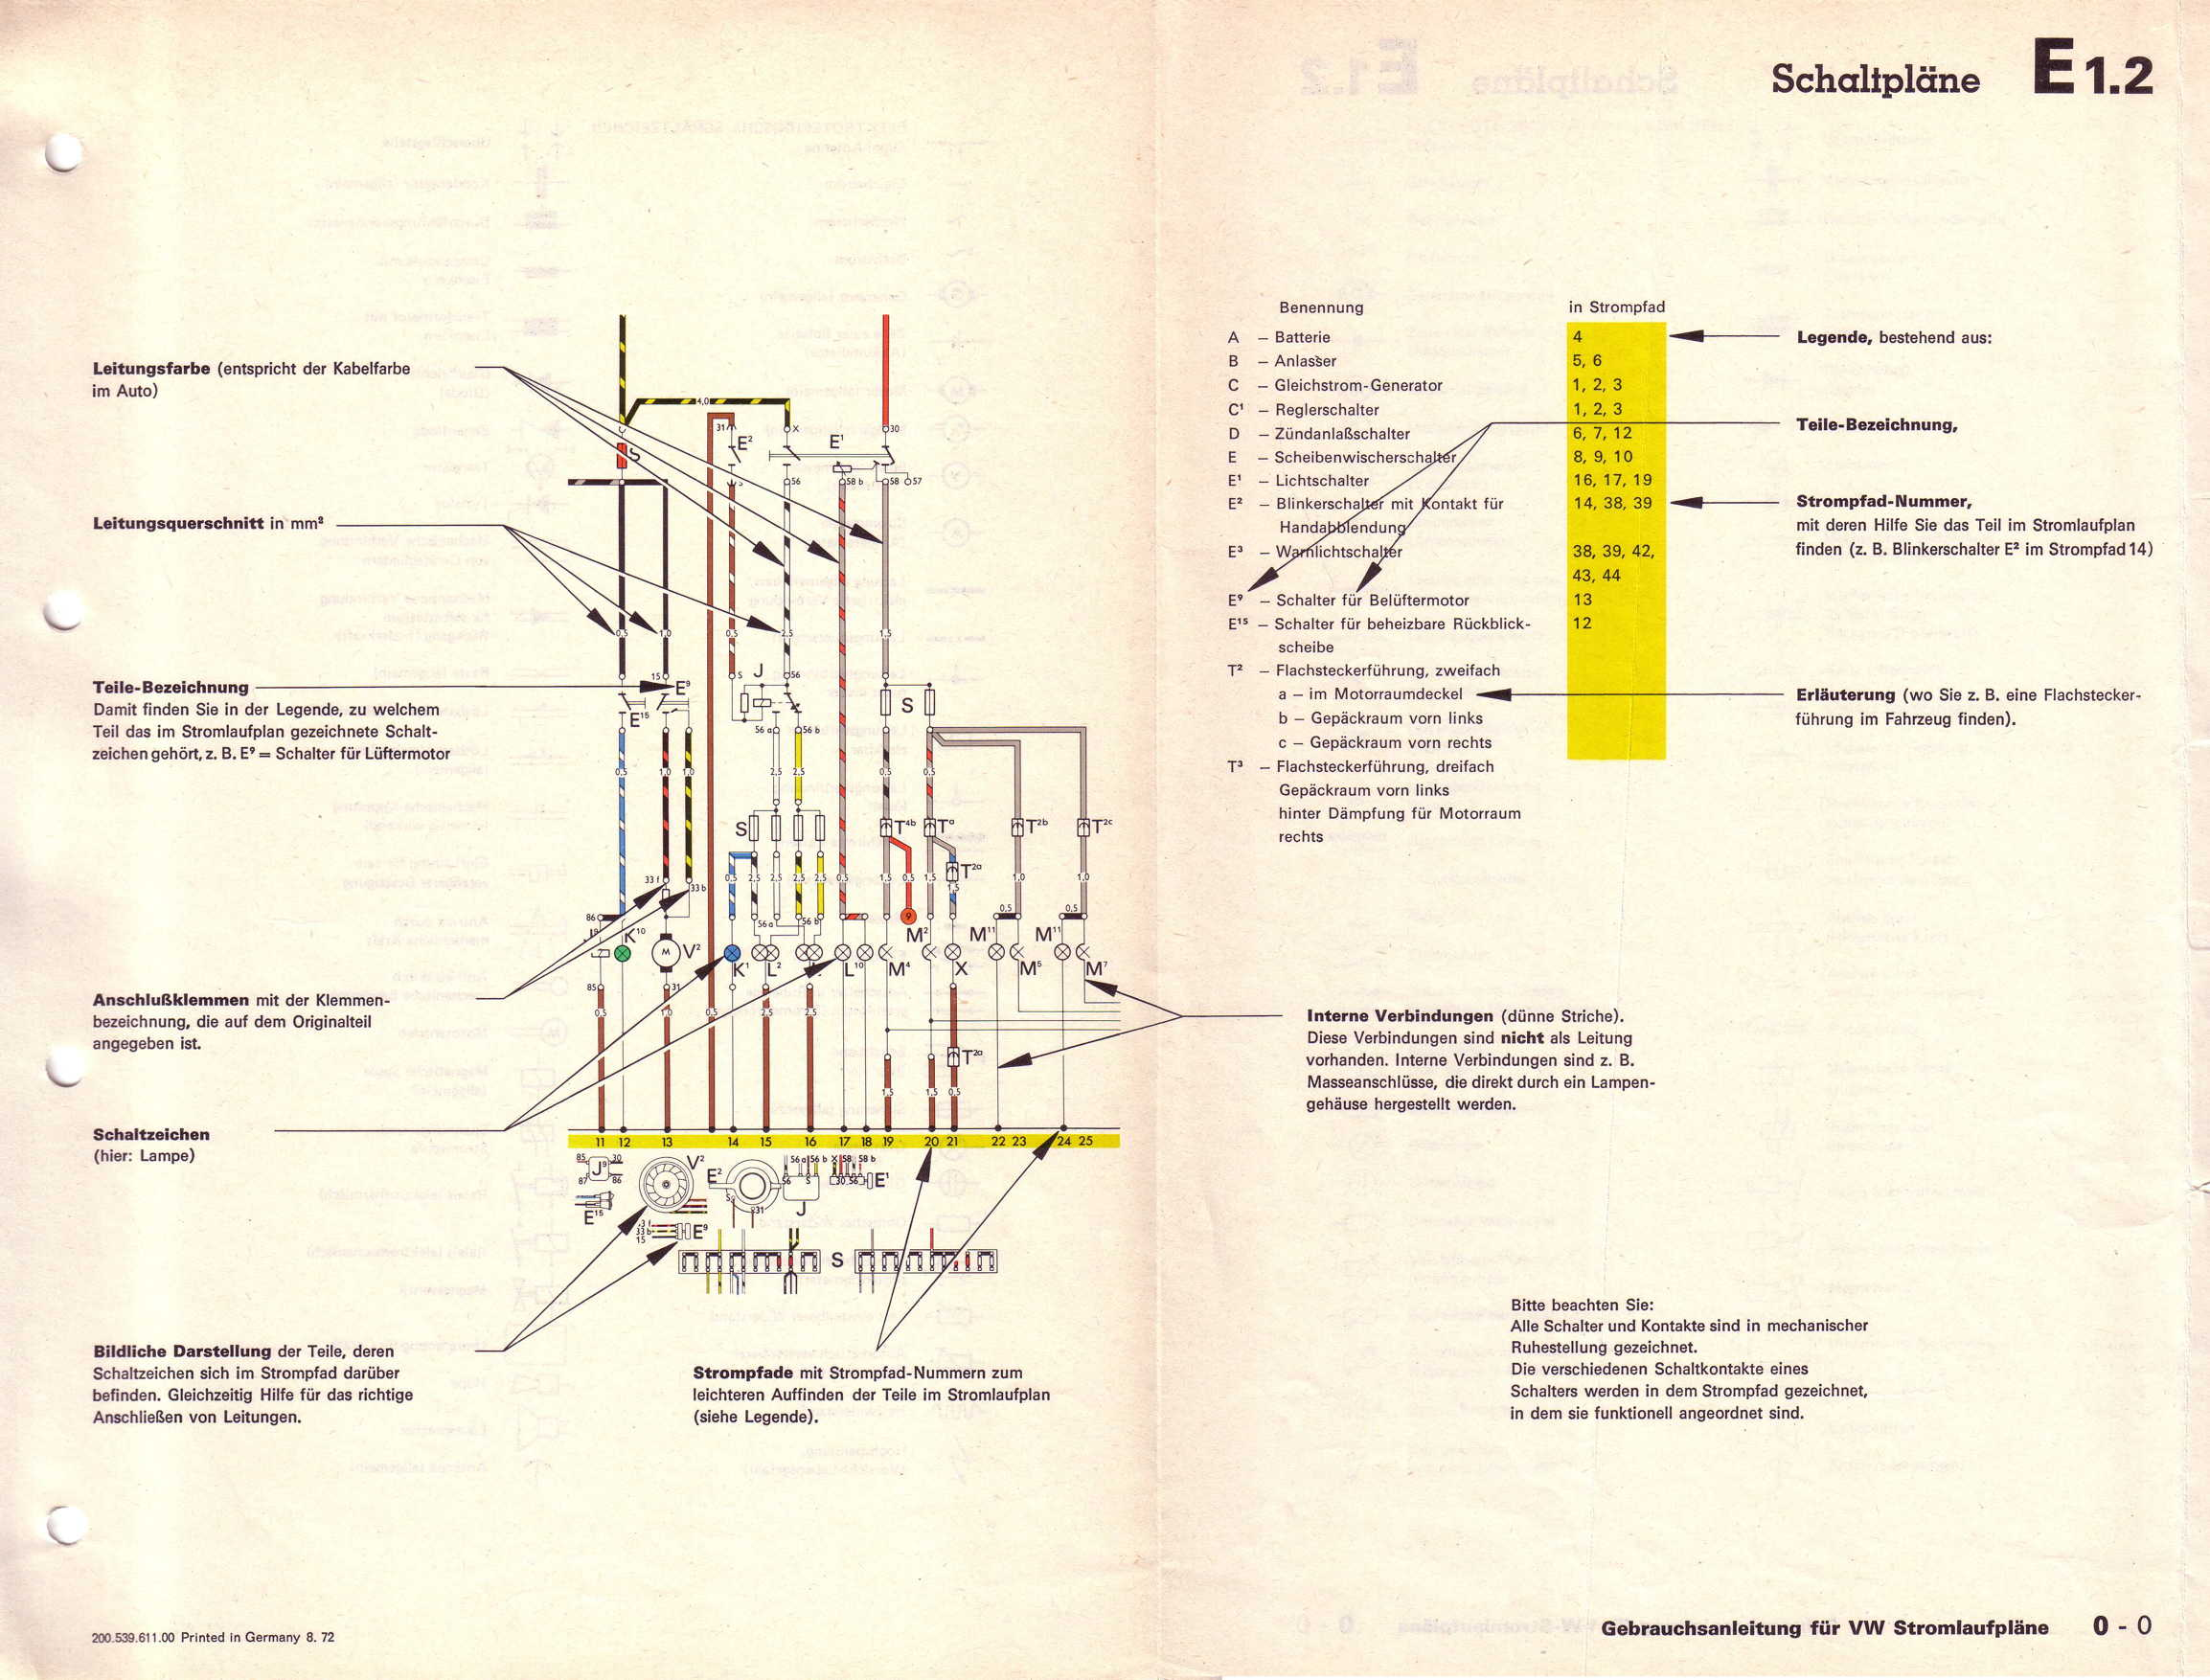 1972 08 vw instructions wiring diagram?resize\=665%2C506 diagrams 762360 kinroad gy6 buggy wiring diagram dazon raider kinroad sahara 150 wiring harness diagram at crackthecode.co